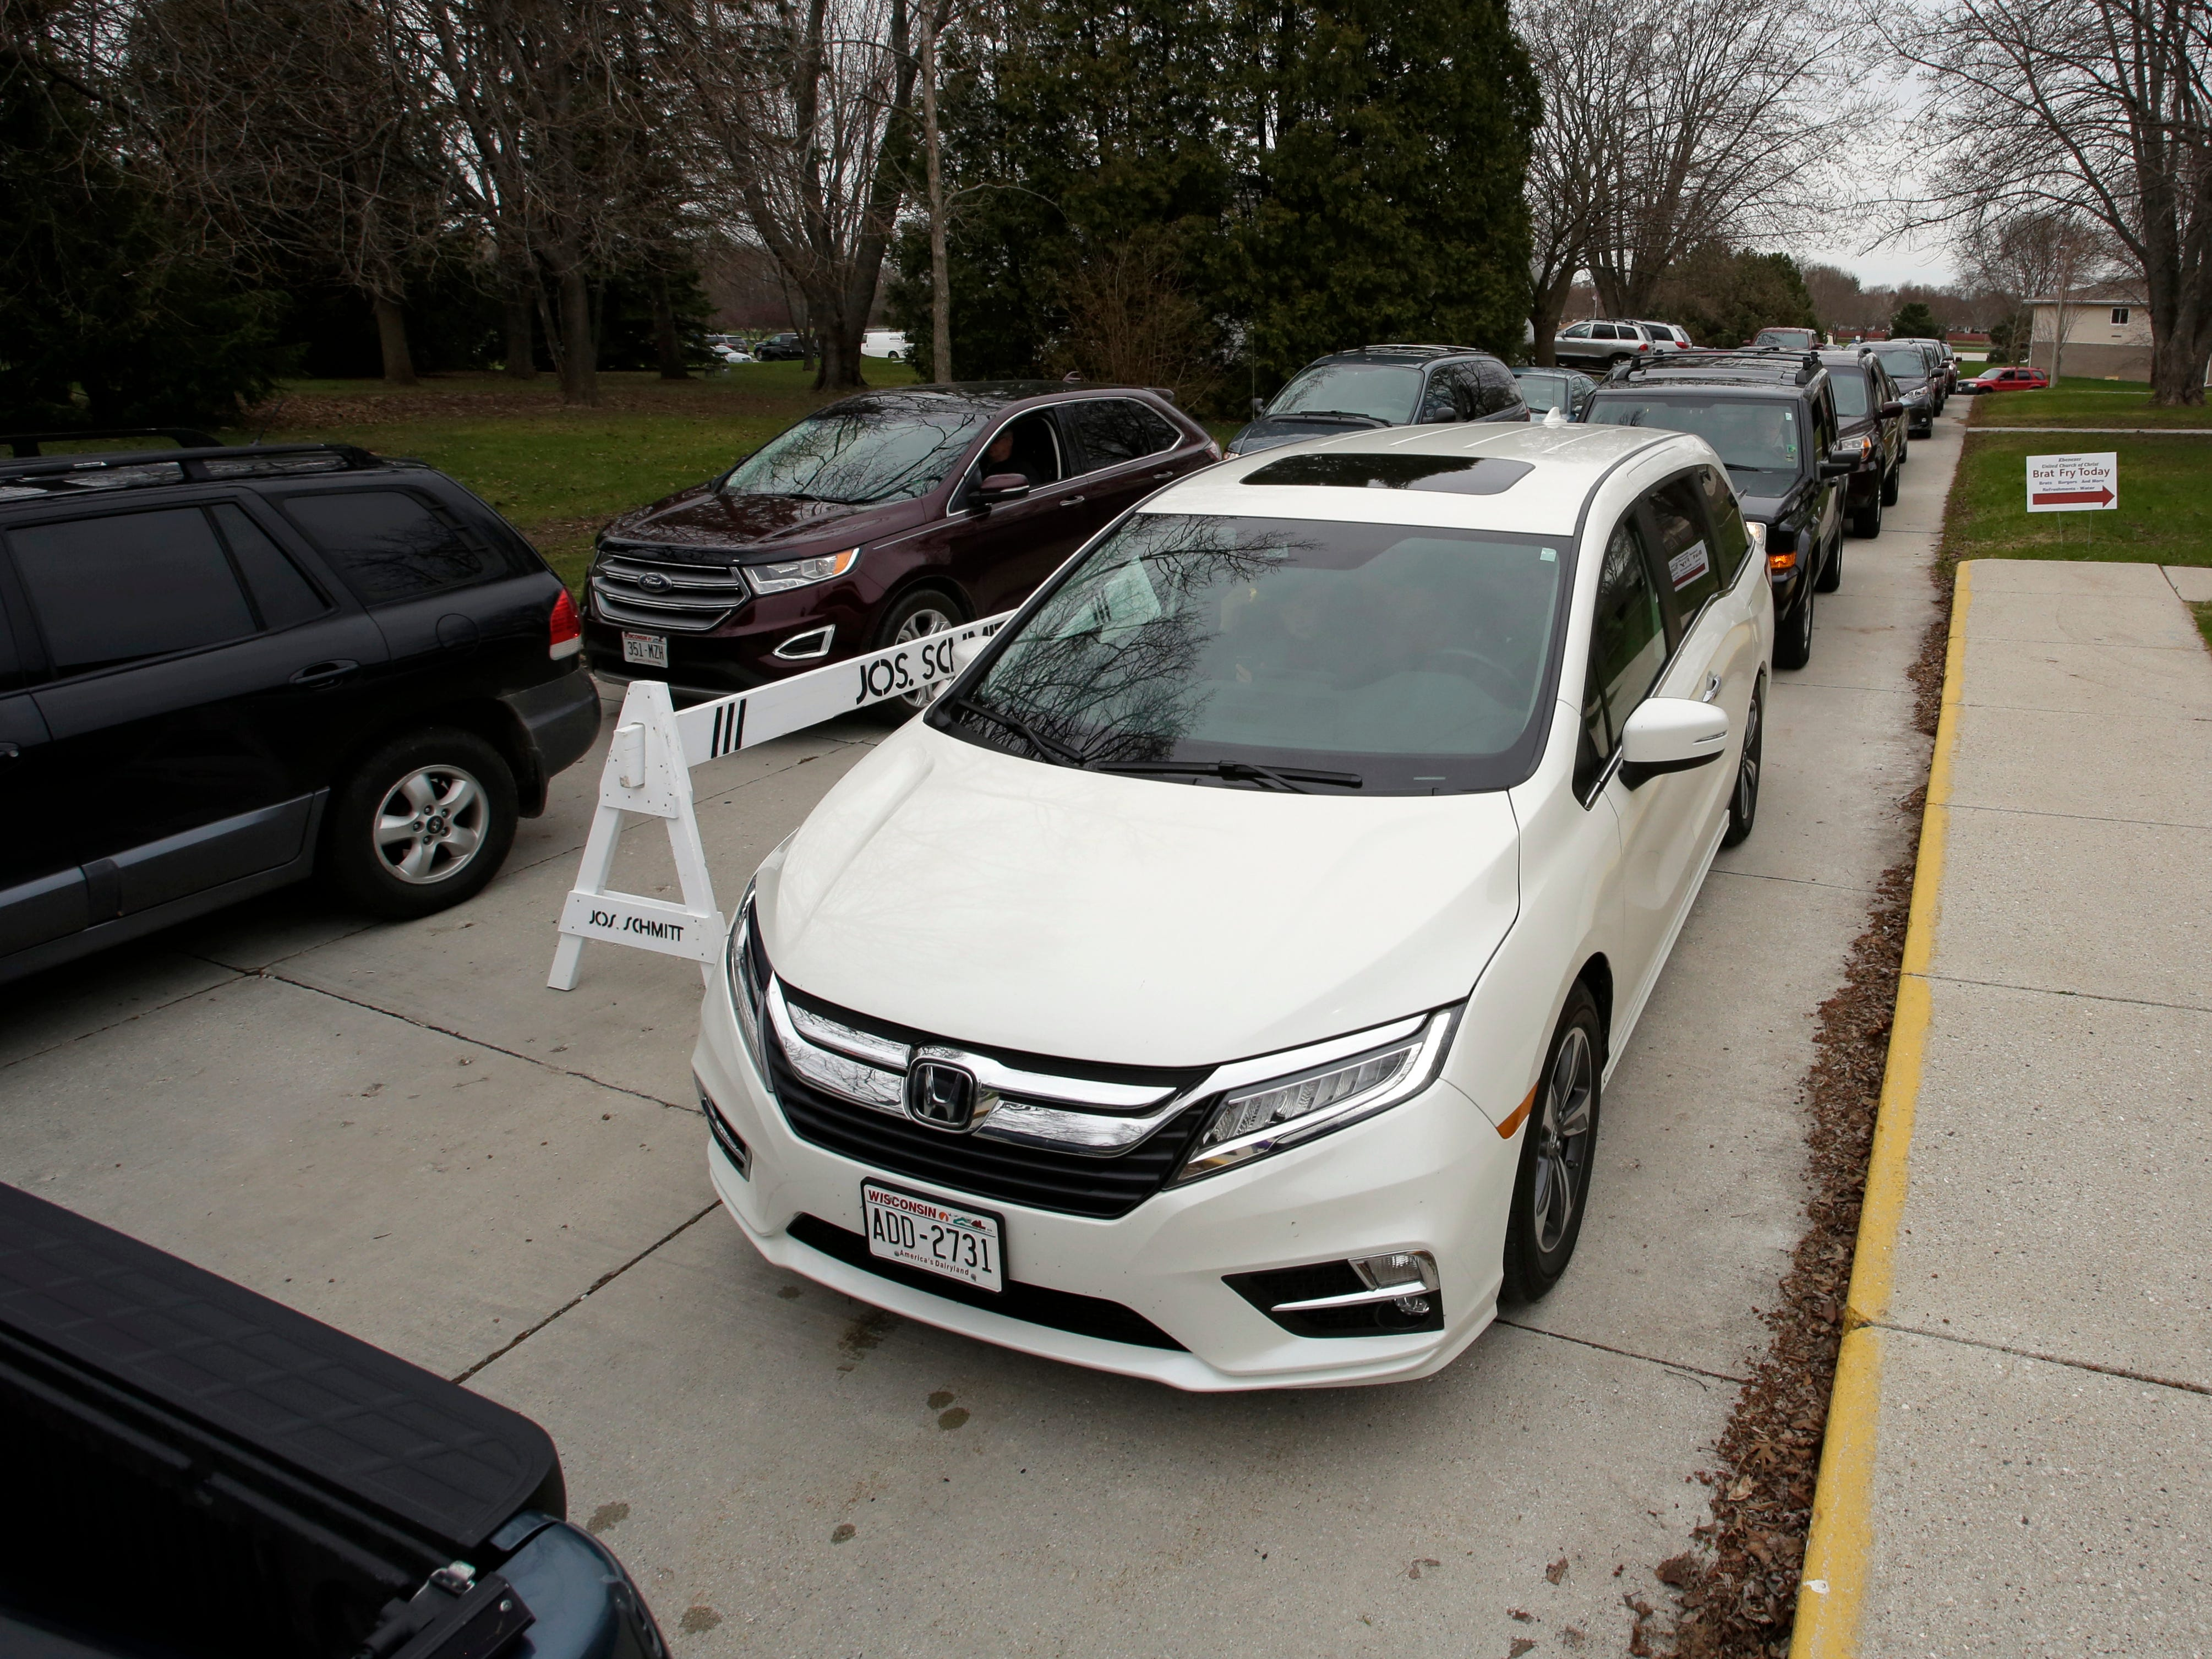 Vehicles wait in line at a recycling event at Ebenezer United Church of Christ, Saturday, April 27, 2019, in Sheboygan, Wis.